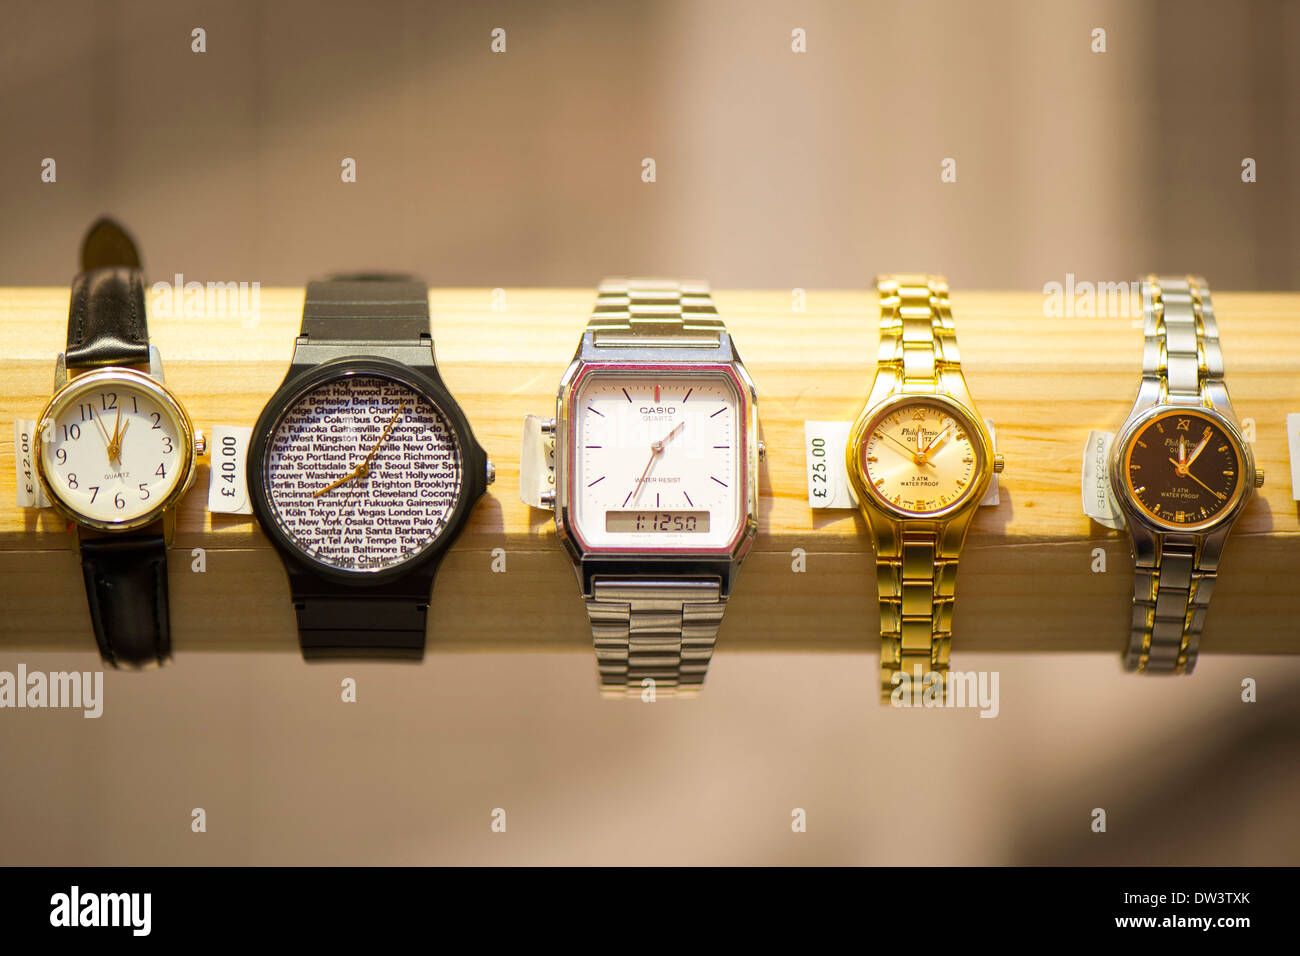 Selection of watches on sale in a shop. - Stock Image